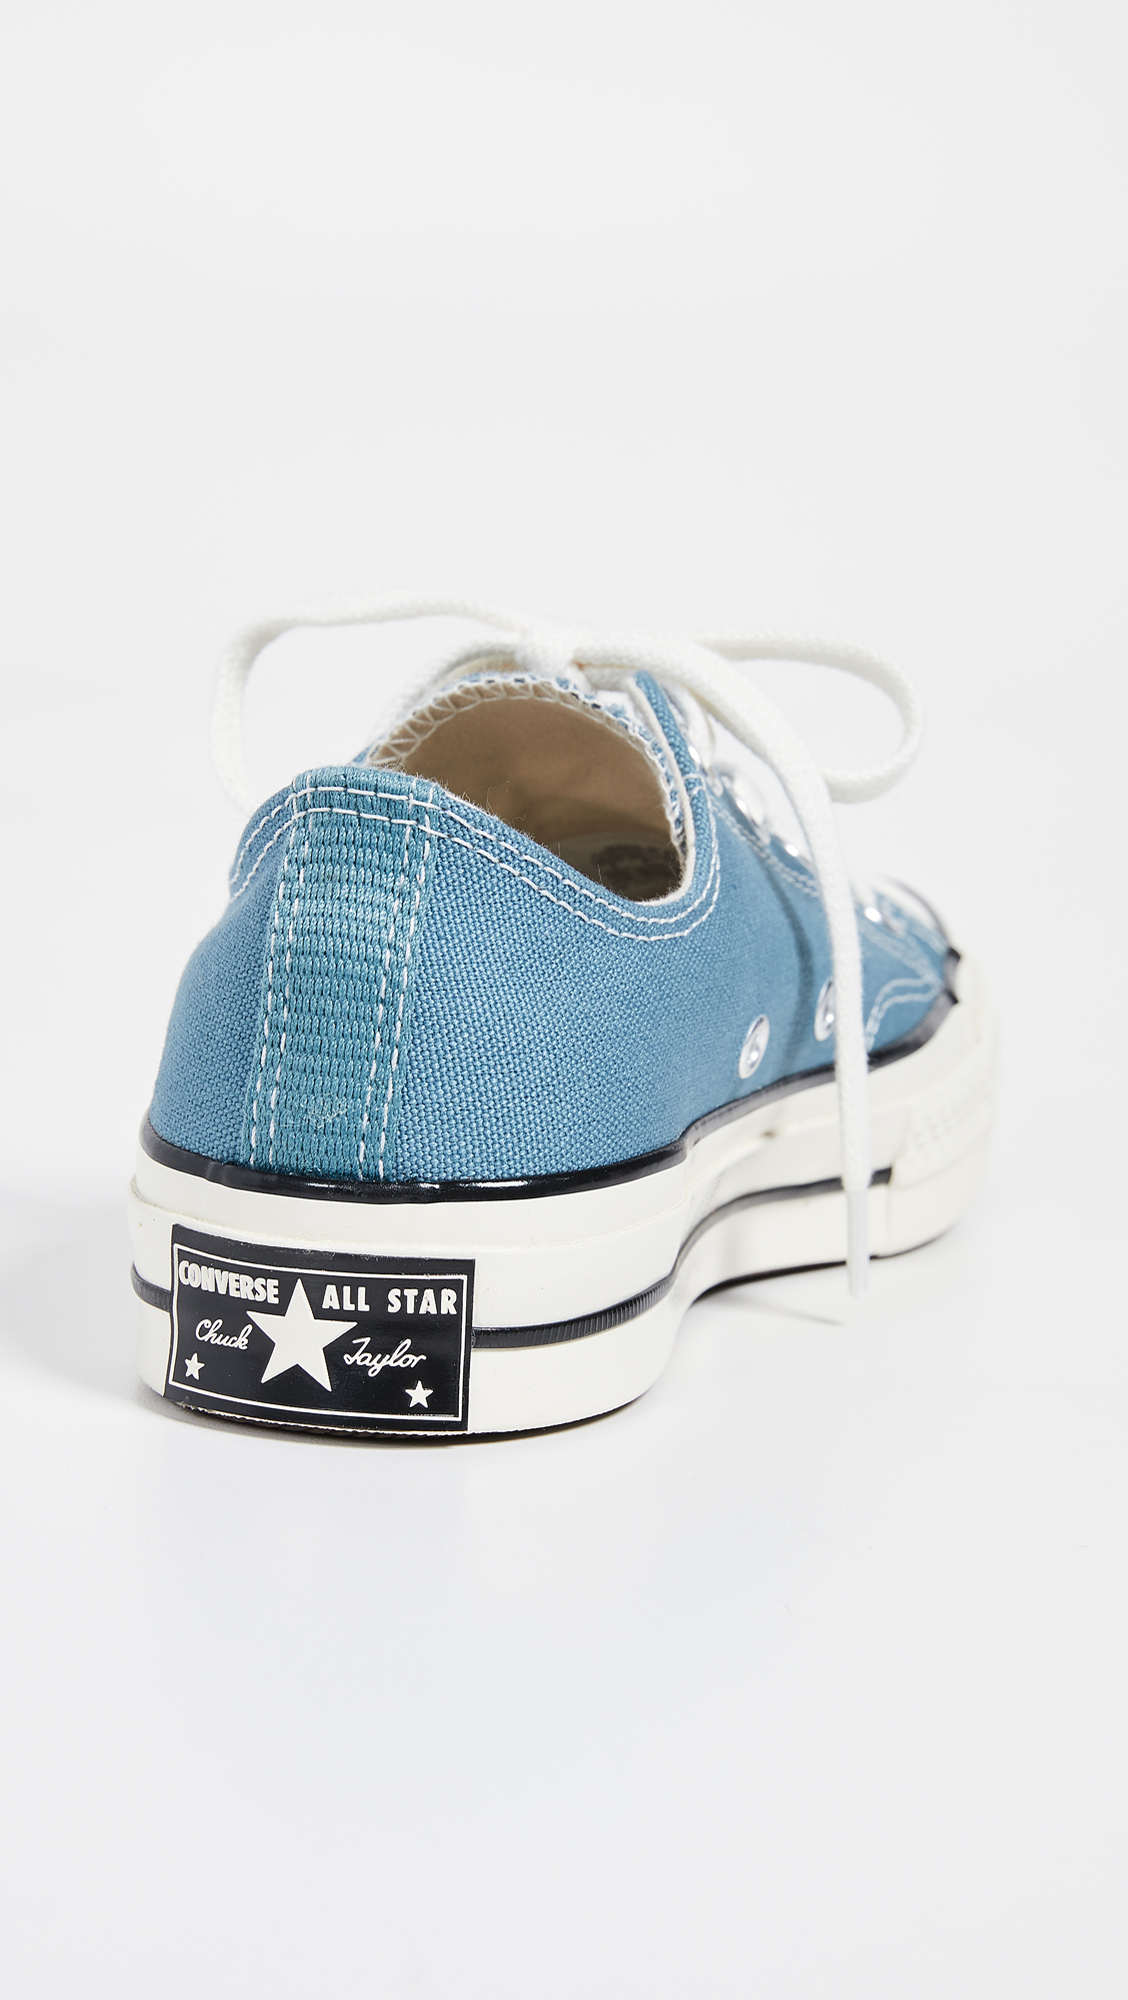 0344dc3fd4d9 Converse Chuck  70s Vintage Ox Sneakers